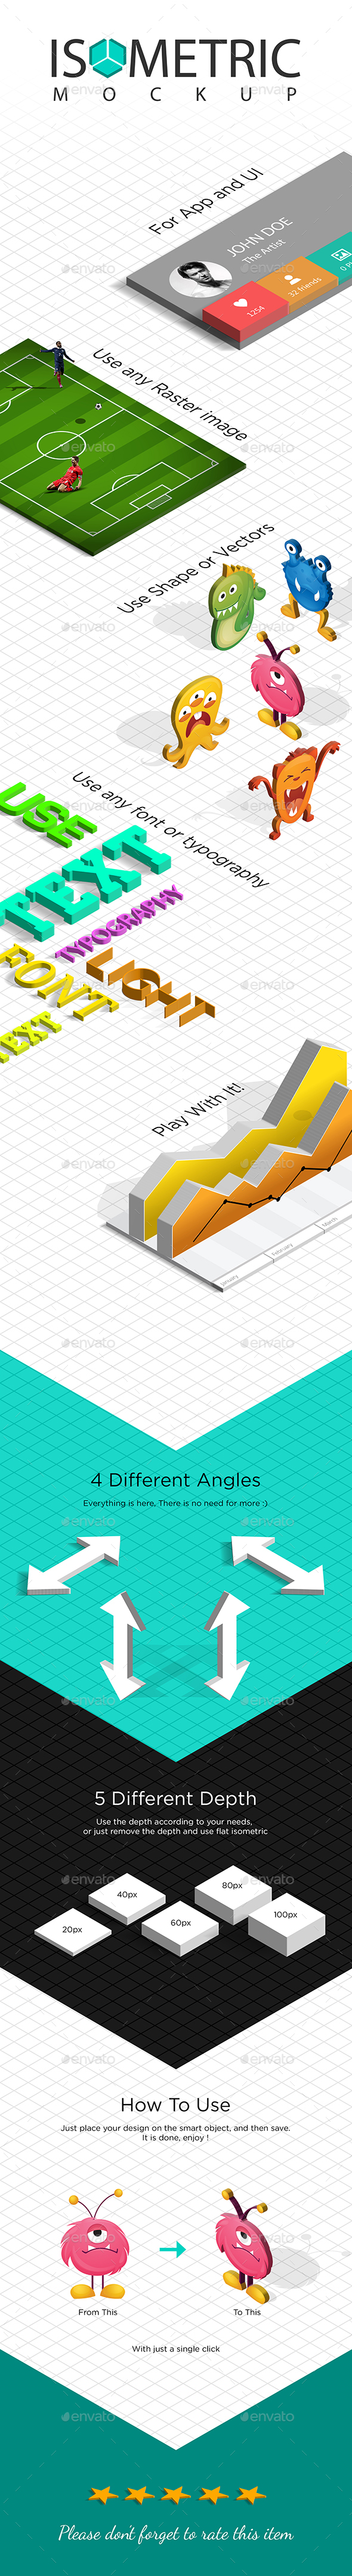 3D Isometric Mockup - Product Mock-Ups Graphics